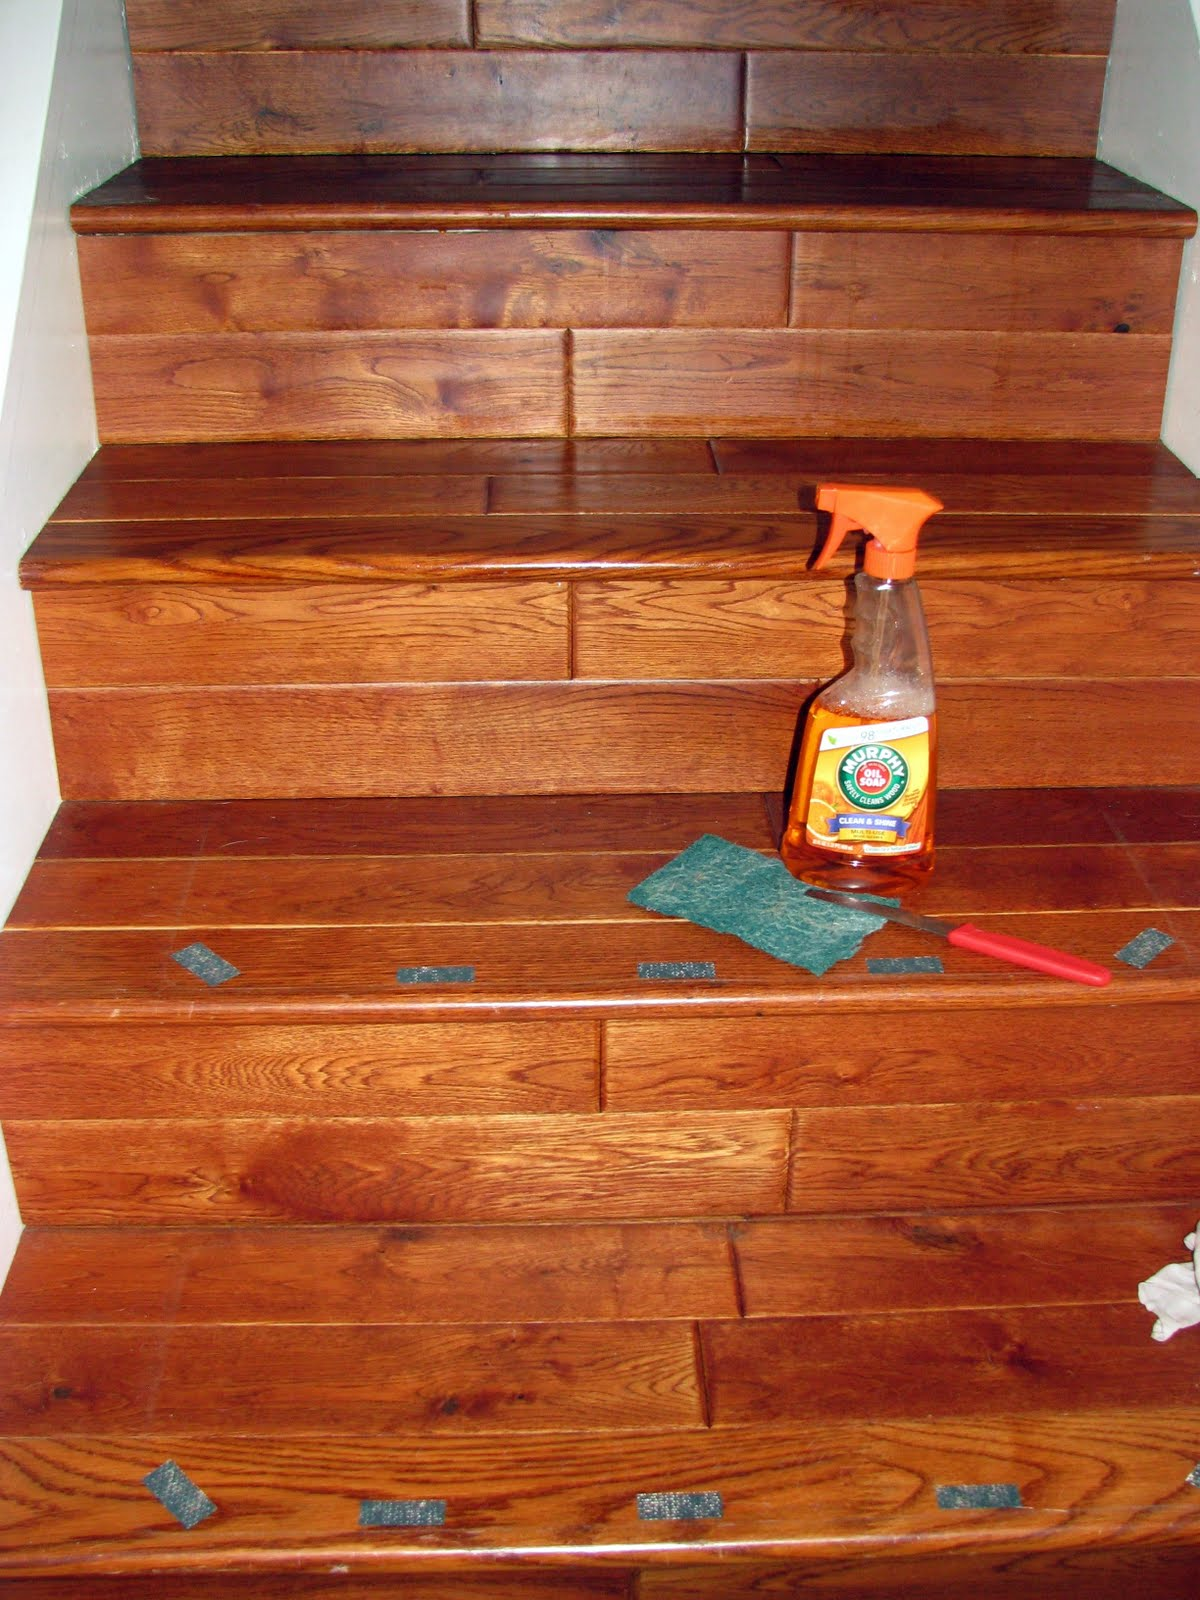 Cleaning hardwood floors with murphy oil soap - Murphy S Oil Soap Not My Usual Floor Care Product But It Did Cut Through And Loosen That Nasty Adhesive A Thorough Cleaning With A Damp Cloth And Vinegar